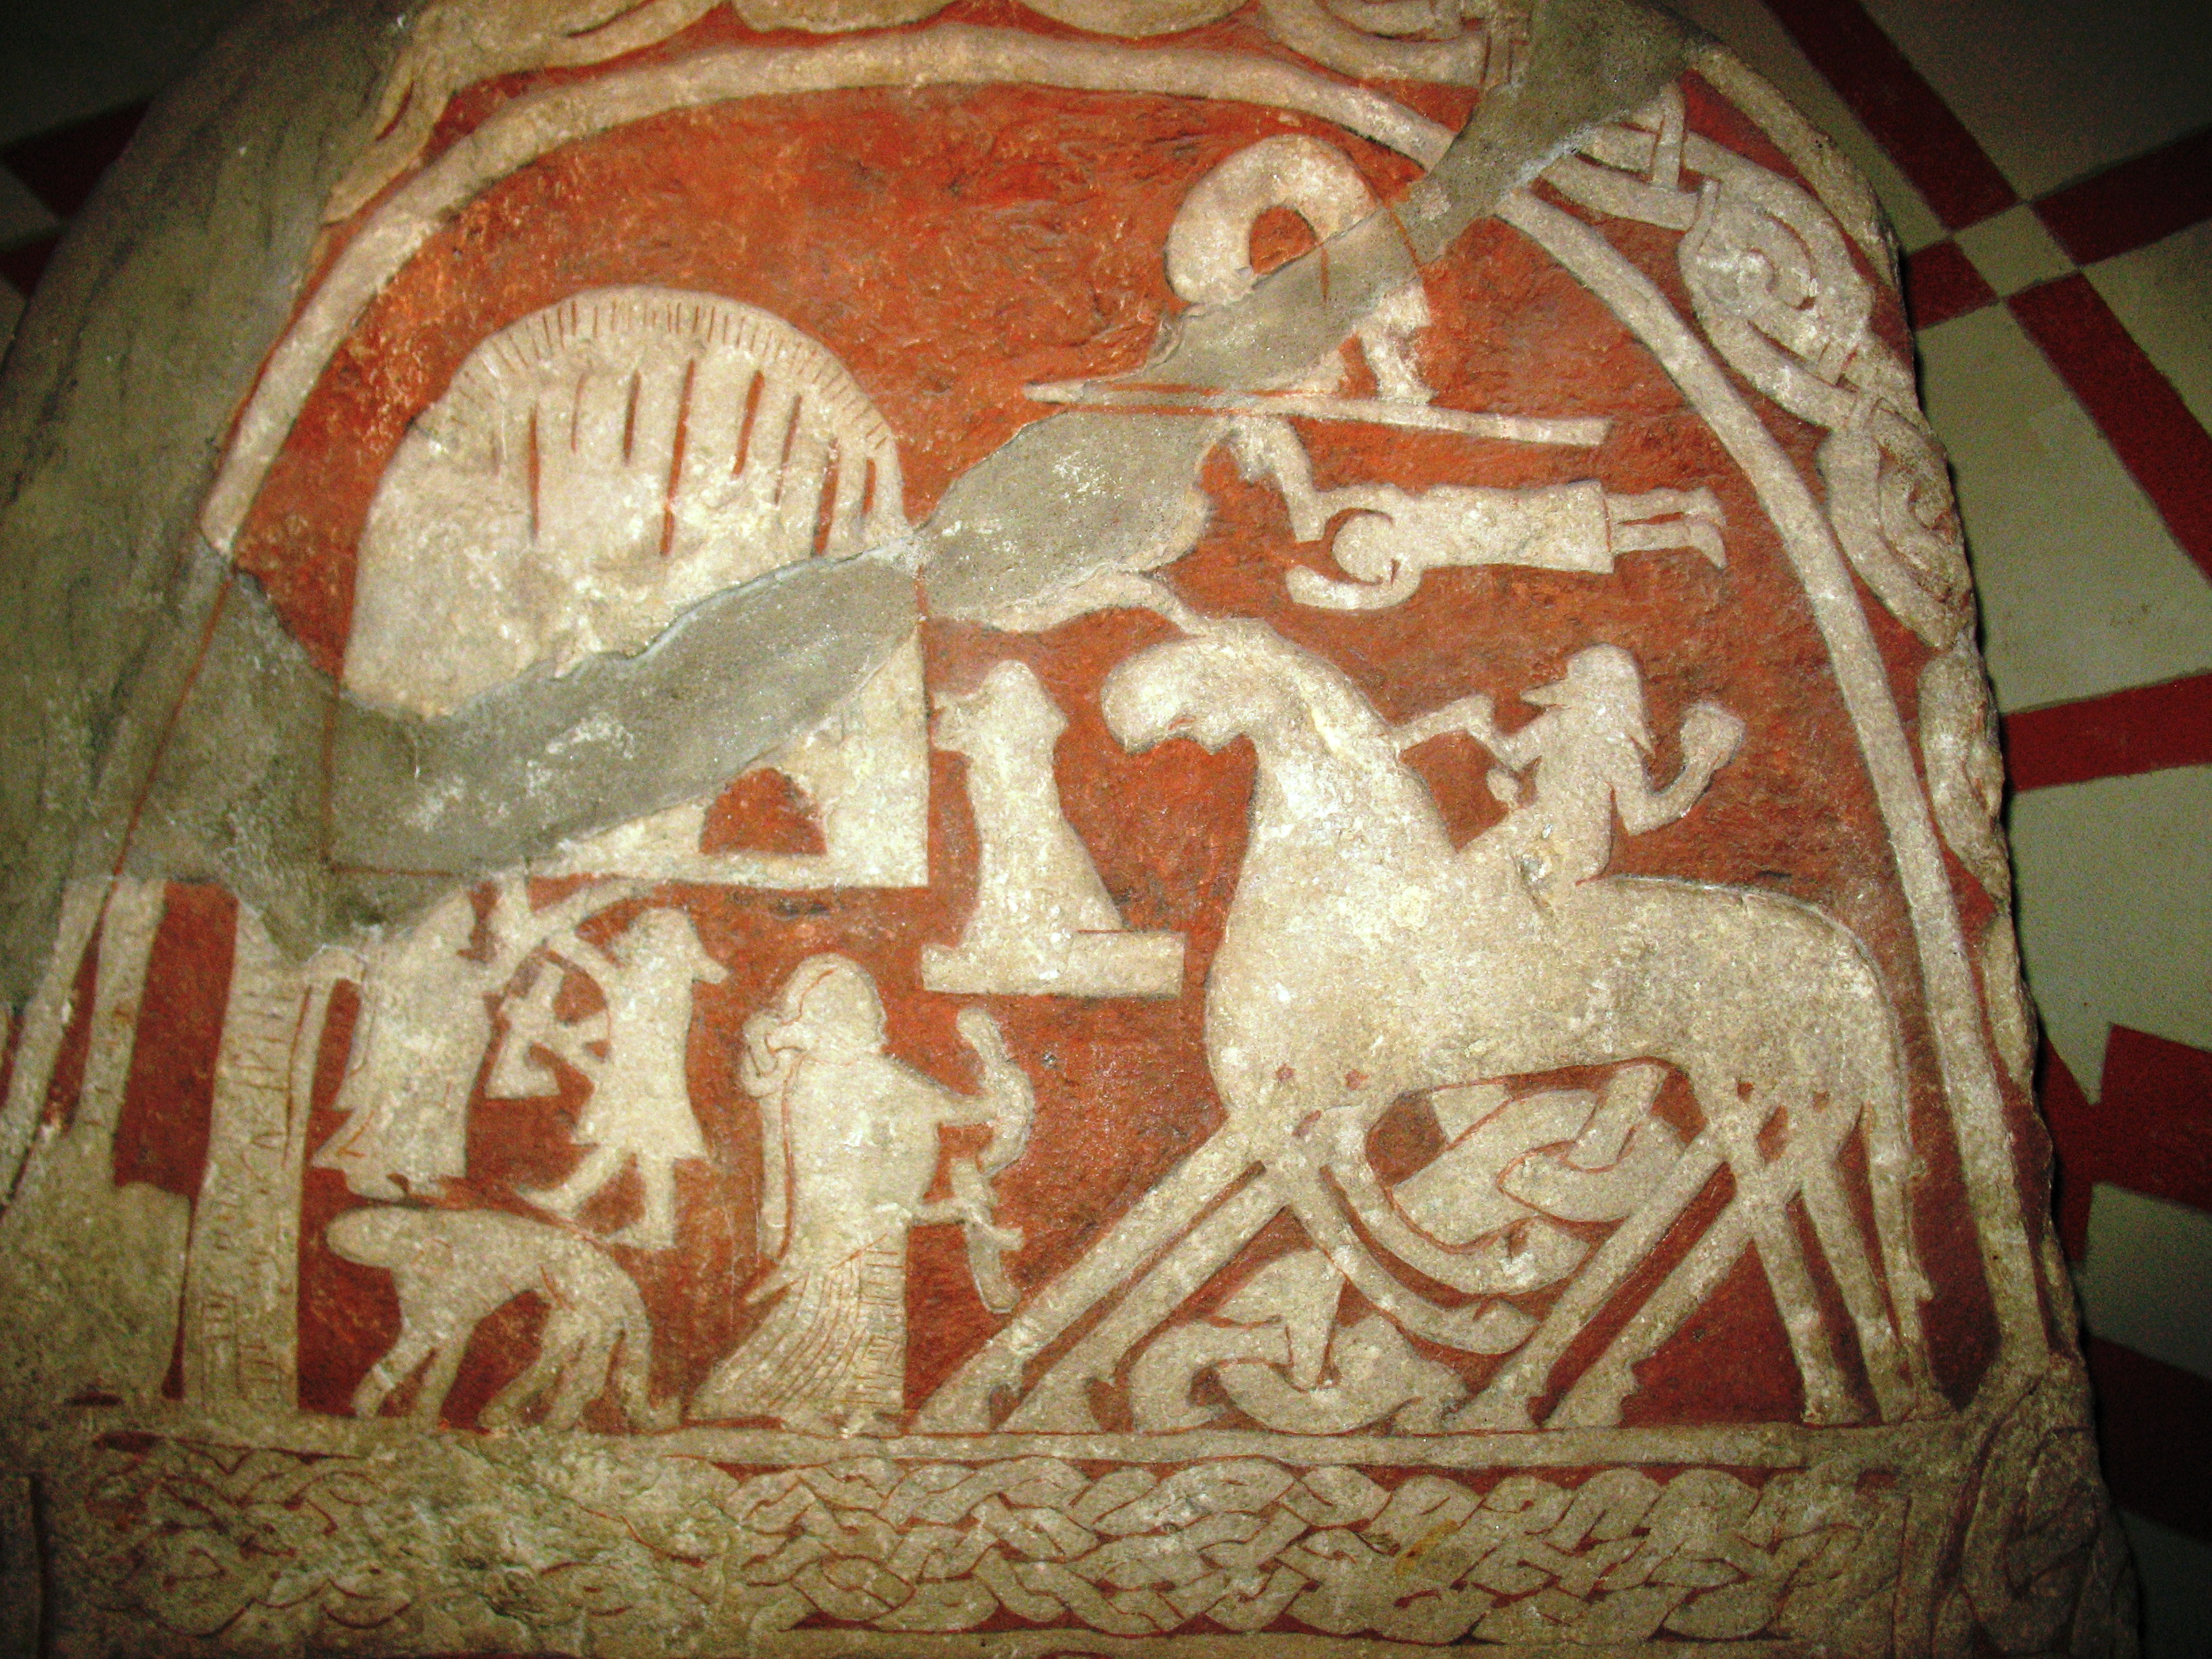 A Comparison of Greek and Norse Mythology